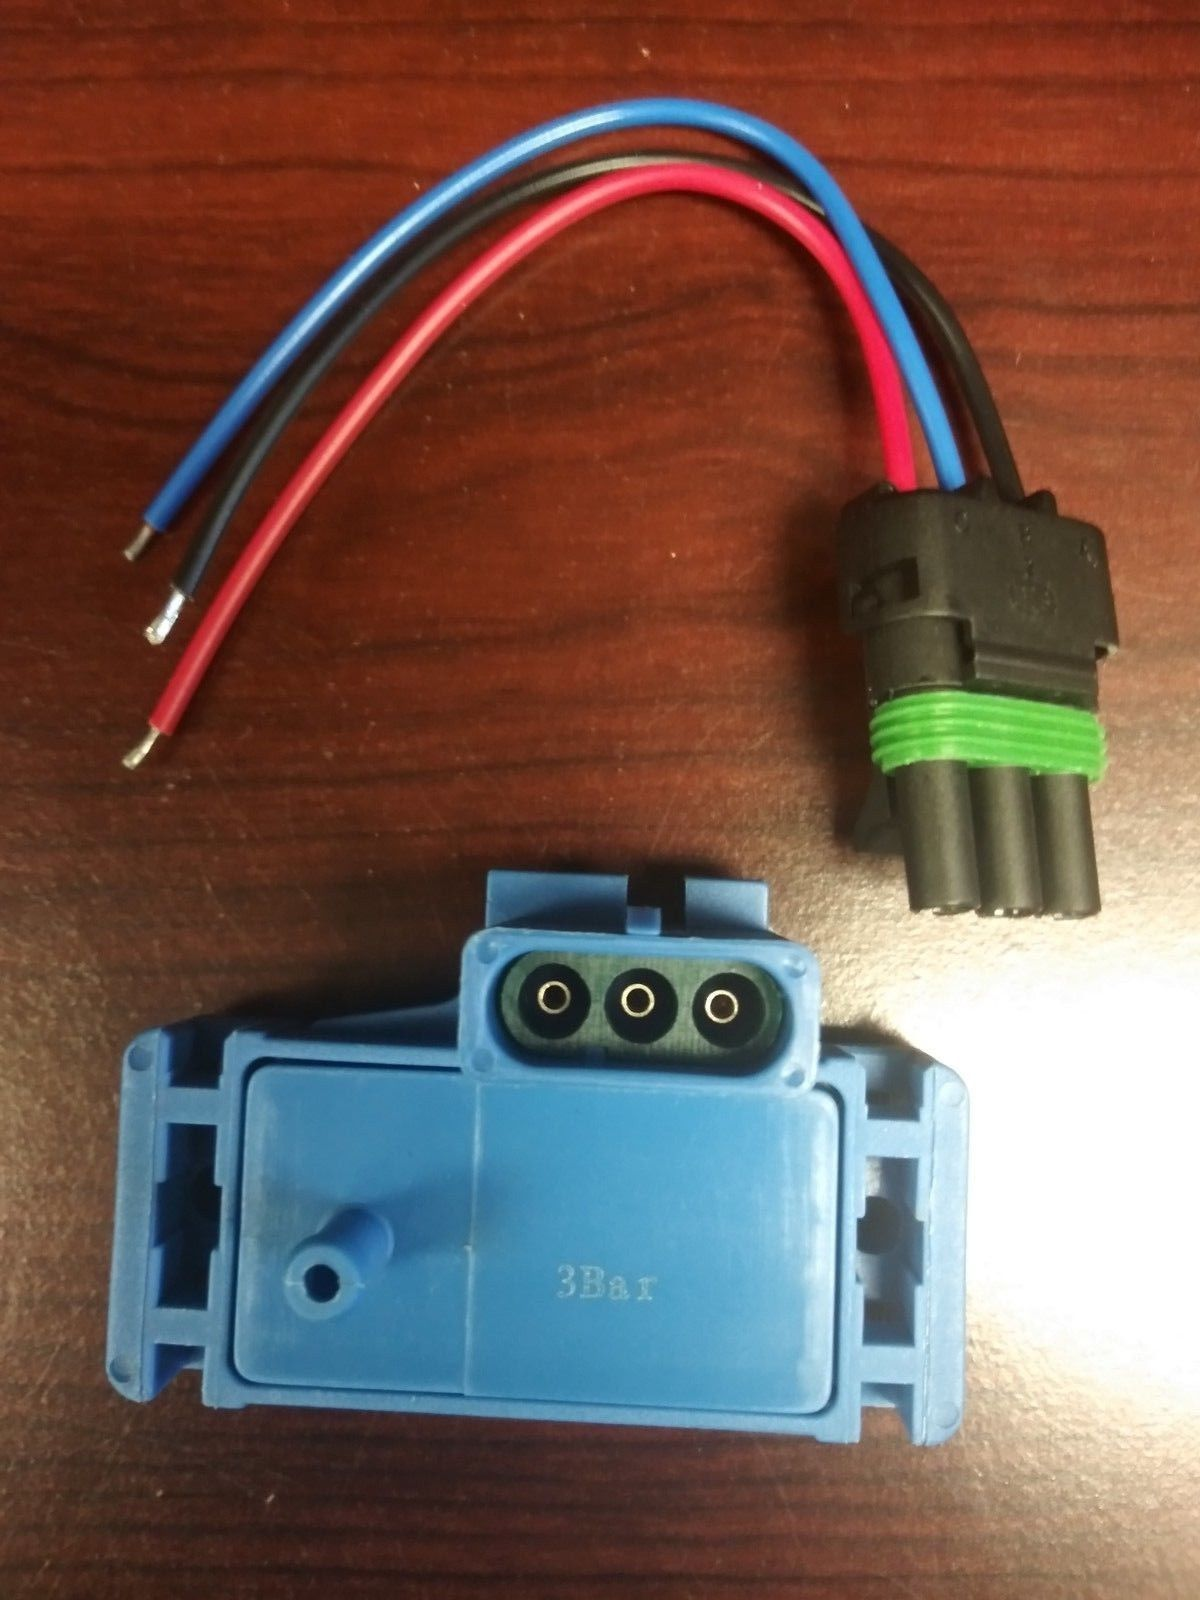 New Gm 4 Bar Map Manifold Pressure Sensor Turbo Boost With Wire Plug Wiring Pigtail Aftermarket